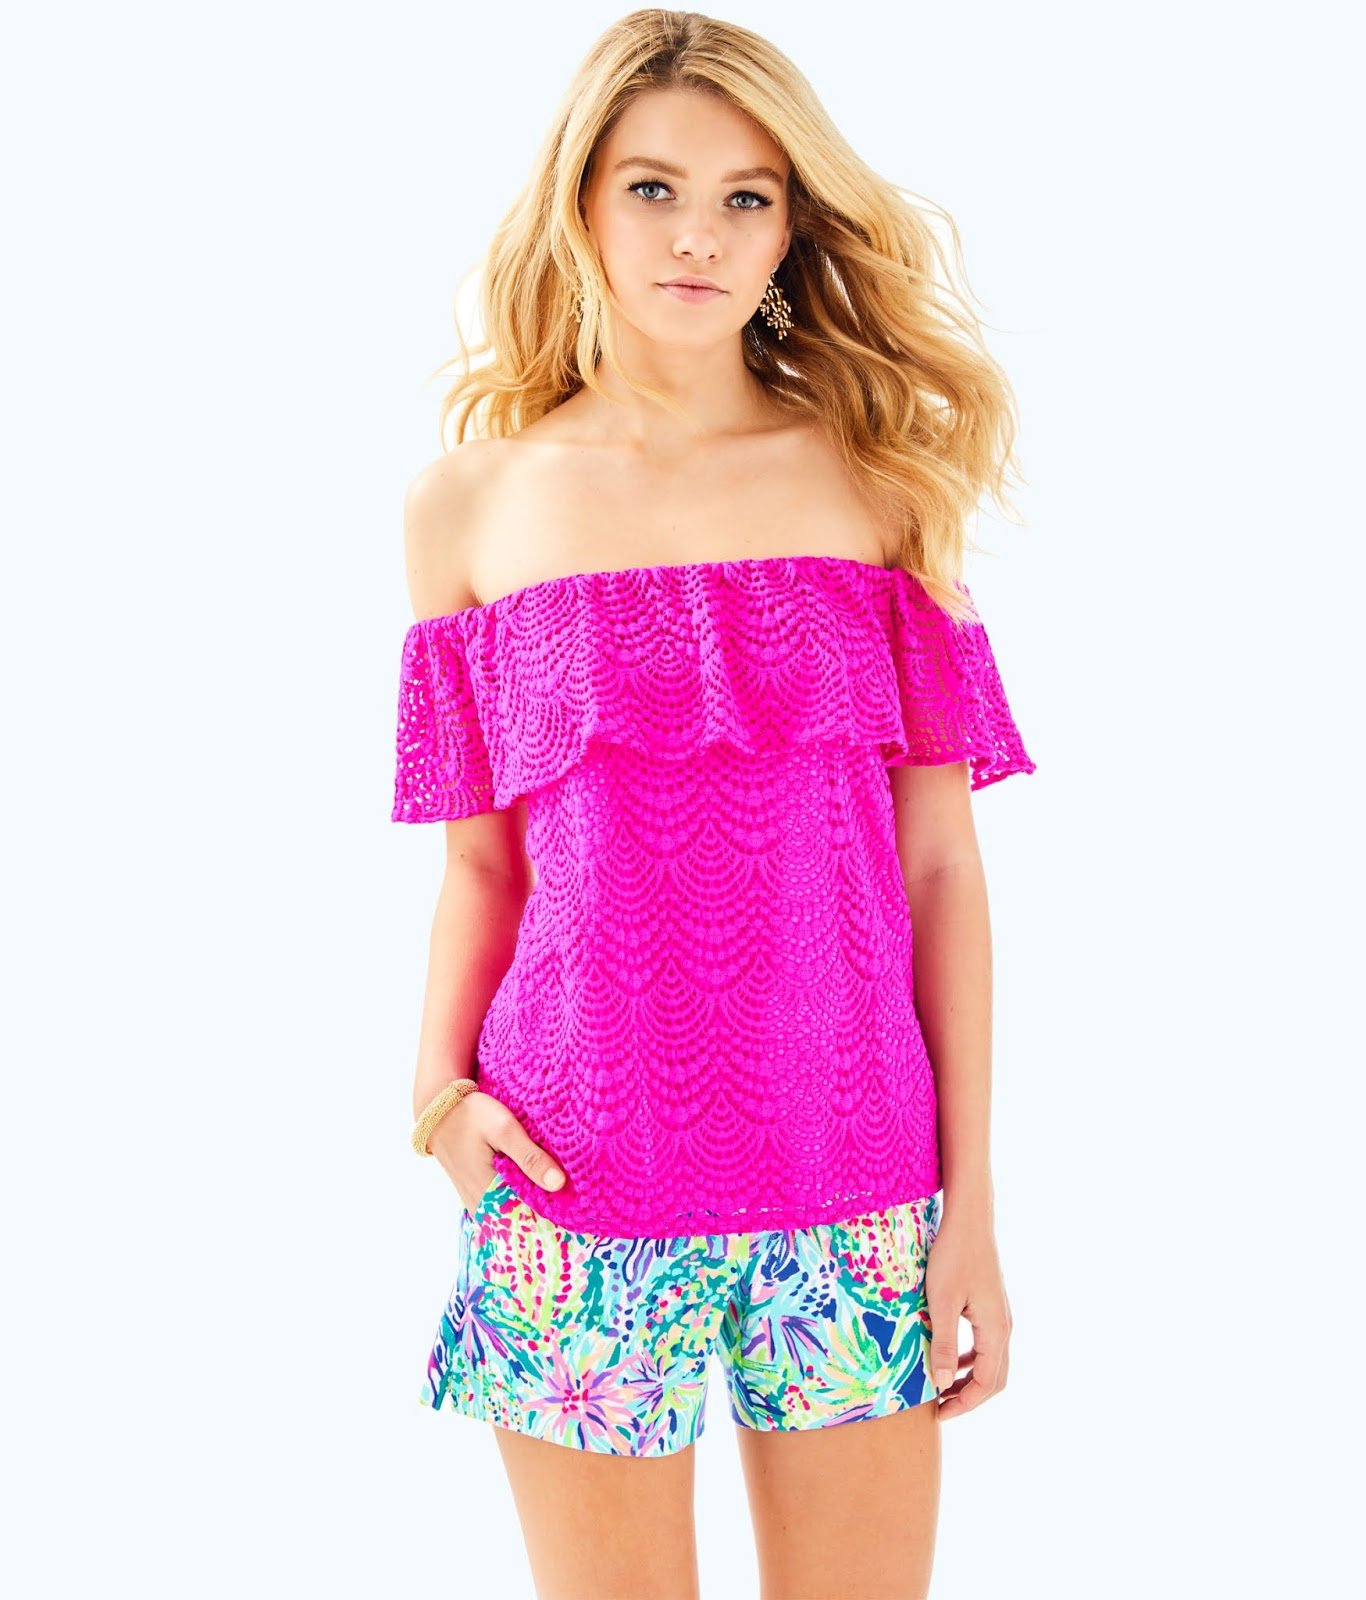 3da178c2d4d4 Hanging with the Hewitts: Top 10 Pieces Under $50 - Lilly Pulitzer ...